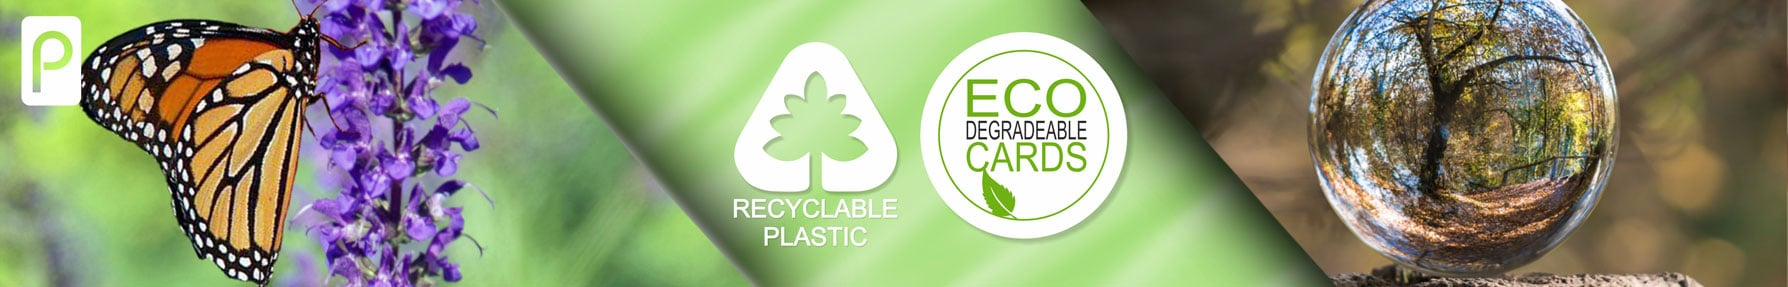 Contactless plastic cards from Premier Eco cards recyclable and degradable